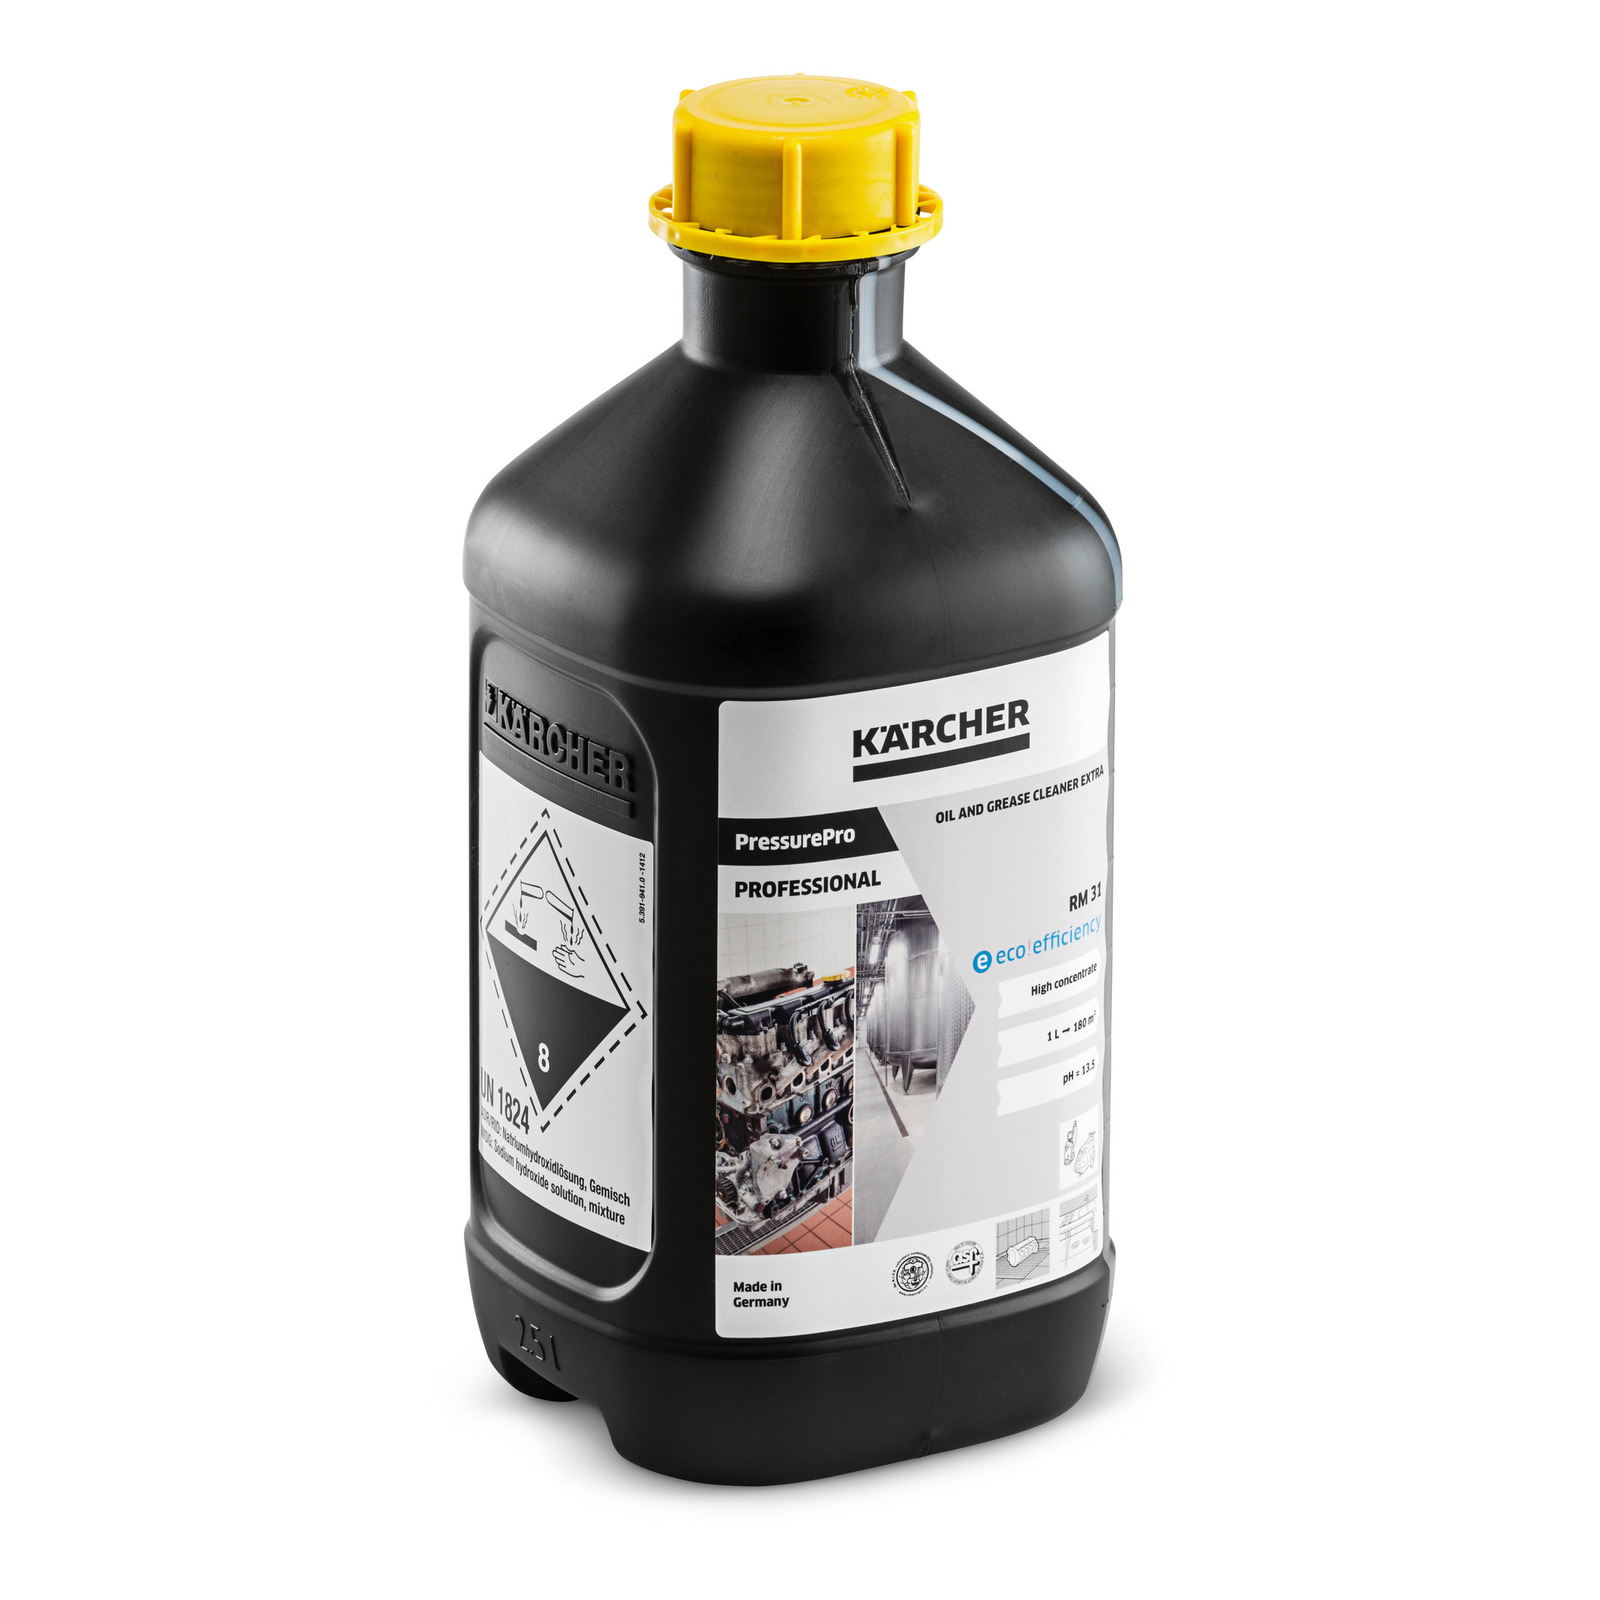 Kärcher  Oil and grease cleaner EXTRA RM 31 ASF eco!efficiency, 2.5 l